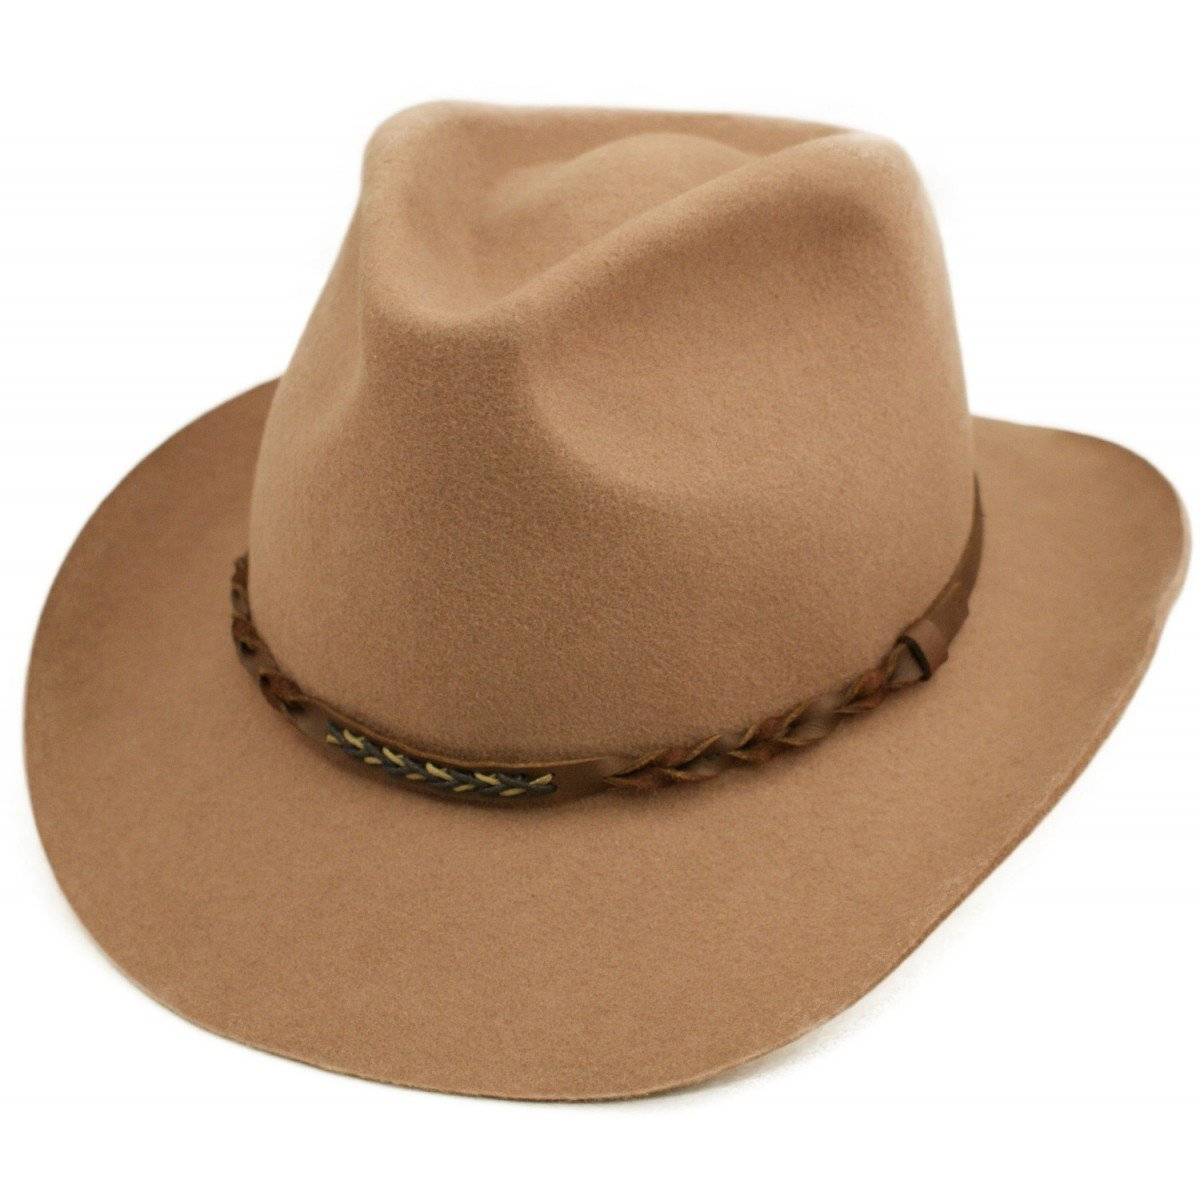 Cotswold Country Hats Wool Cowboy Hat with Twisted Leather Band Trim Black or Brown